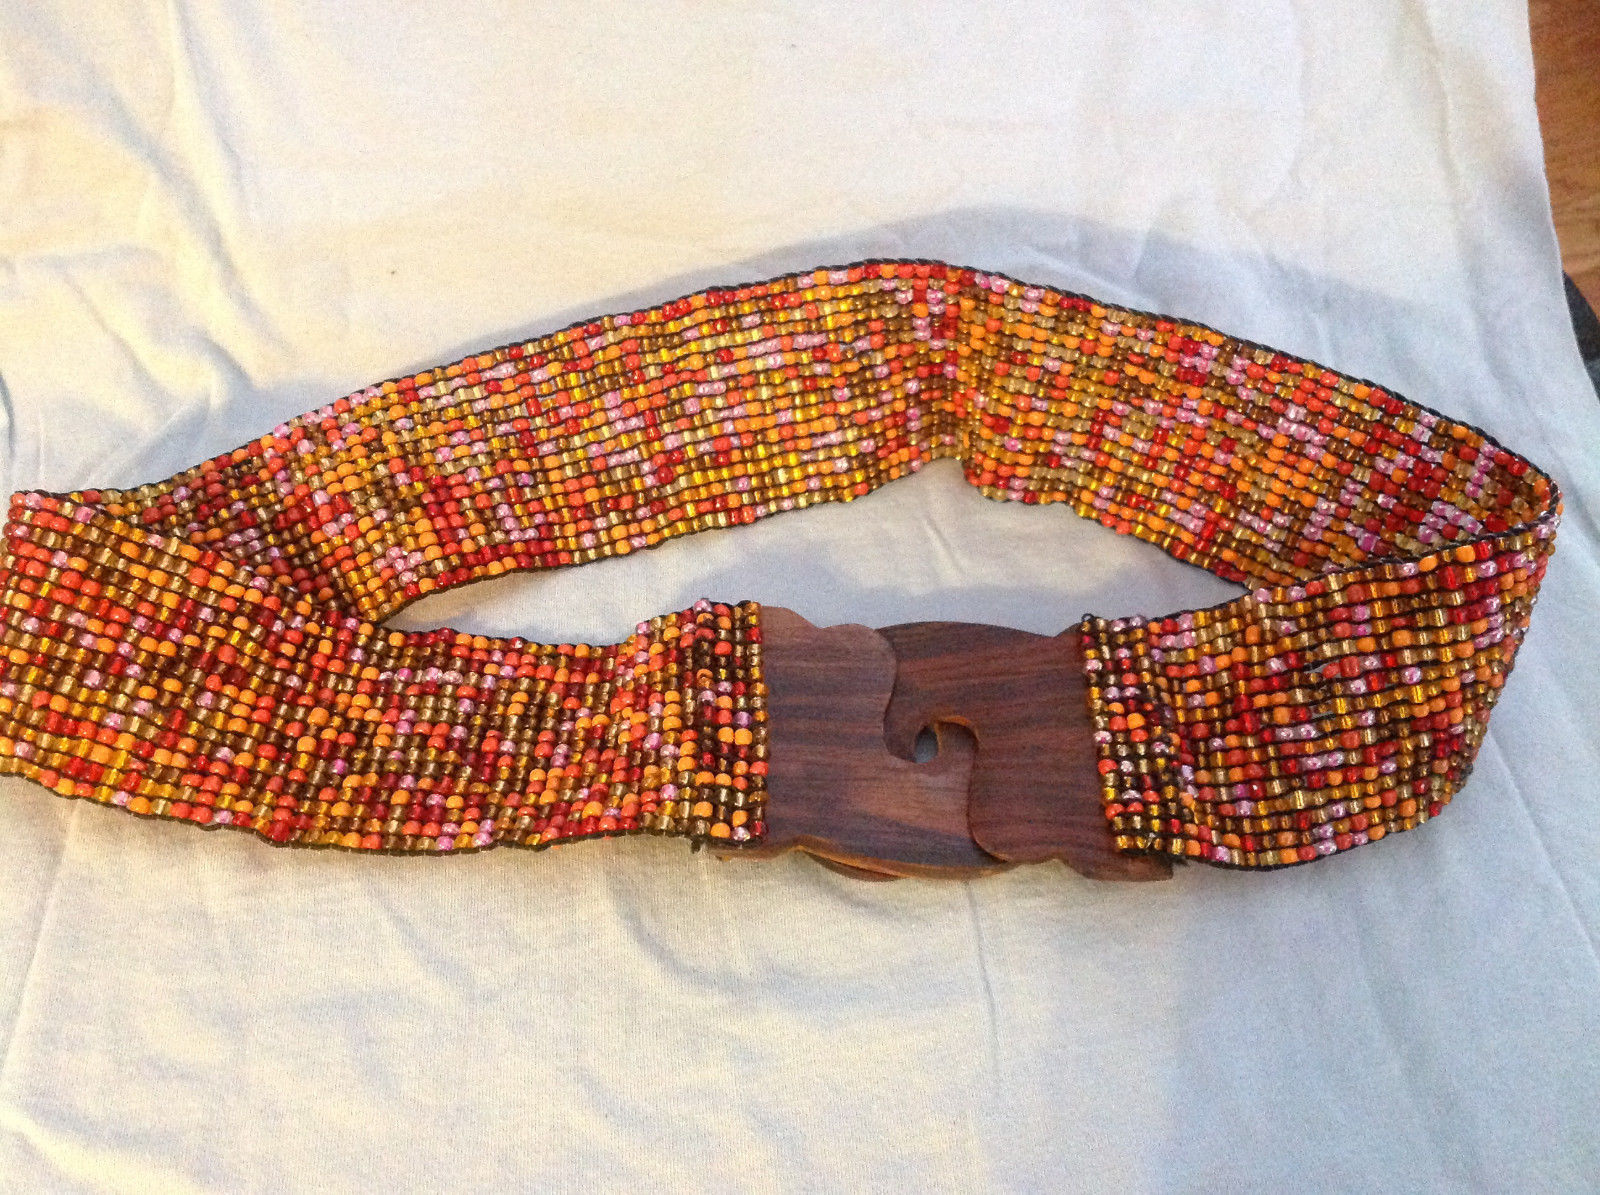 Beaded elastic multicolored belt with wood closure that slips together to close